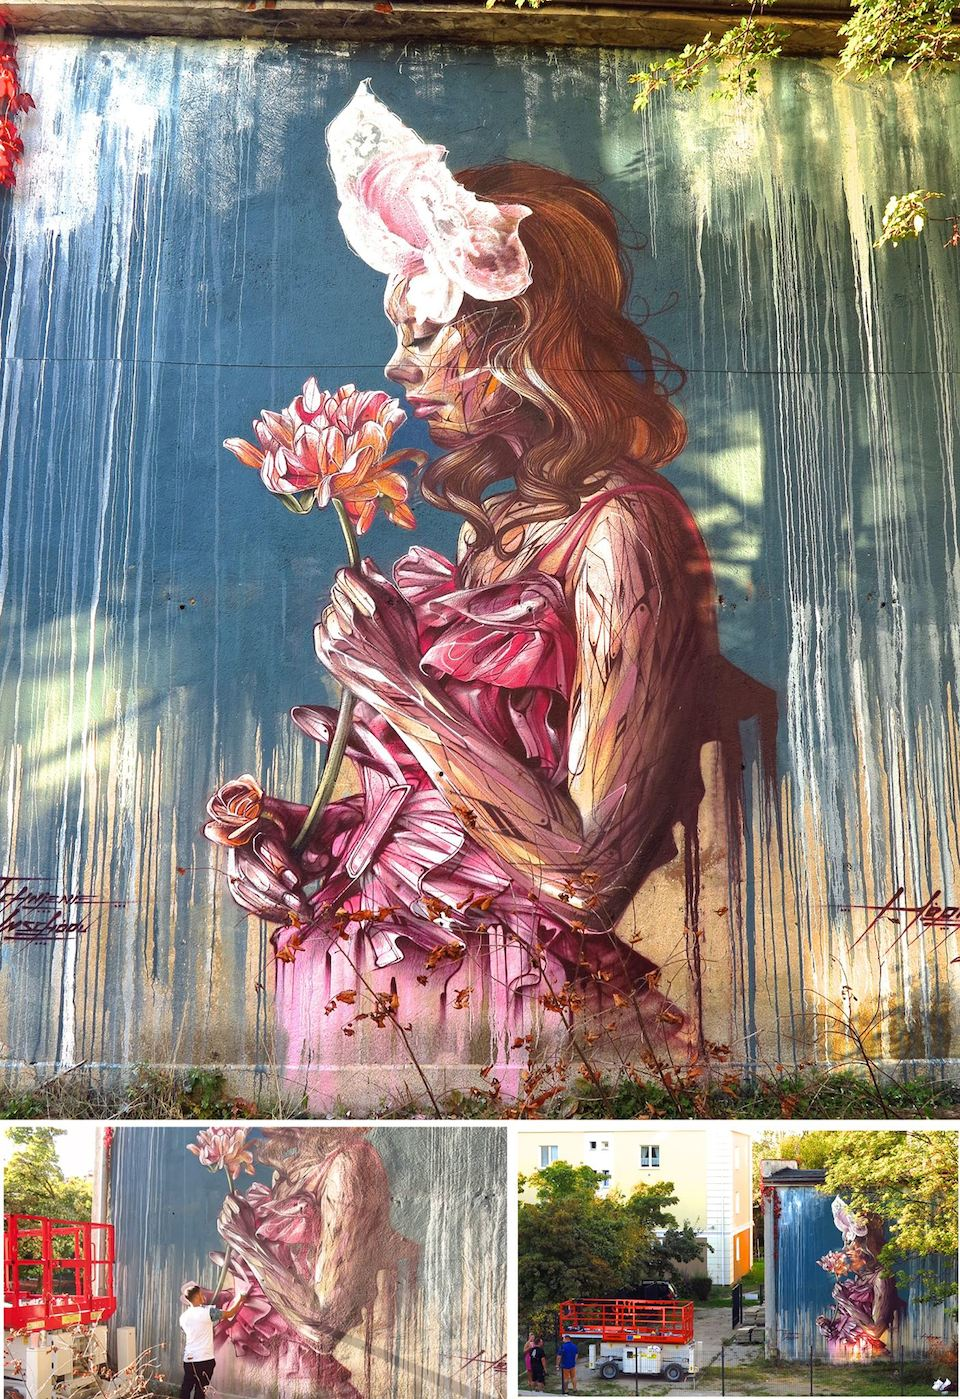 Street-Art-by-Hopare-in-Gdynia-Poland-306985